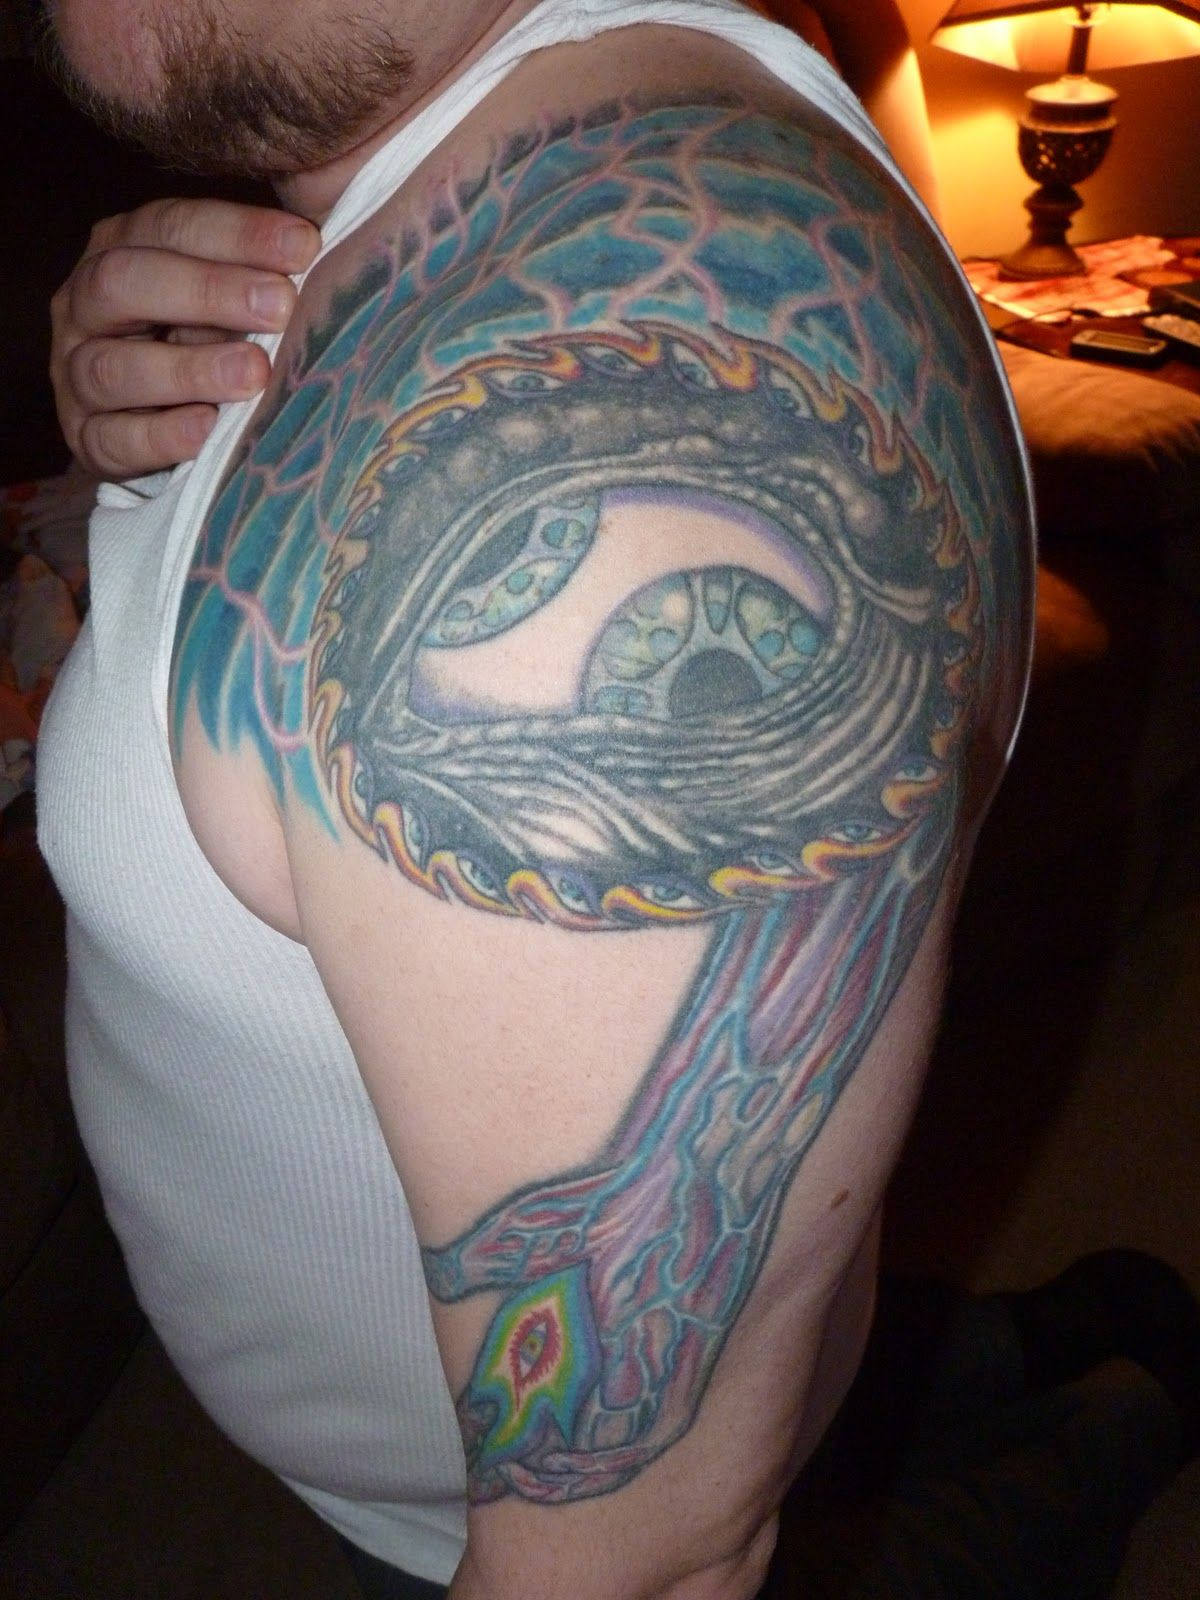 Tool Third Eye Tattoo On Shoulder Tool Band Cross Tattoo Ideas And Designs